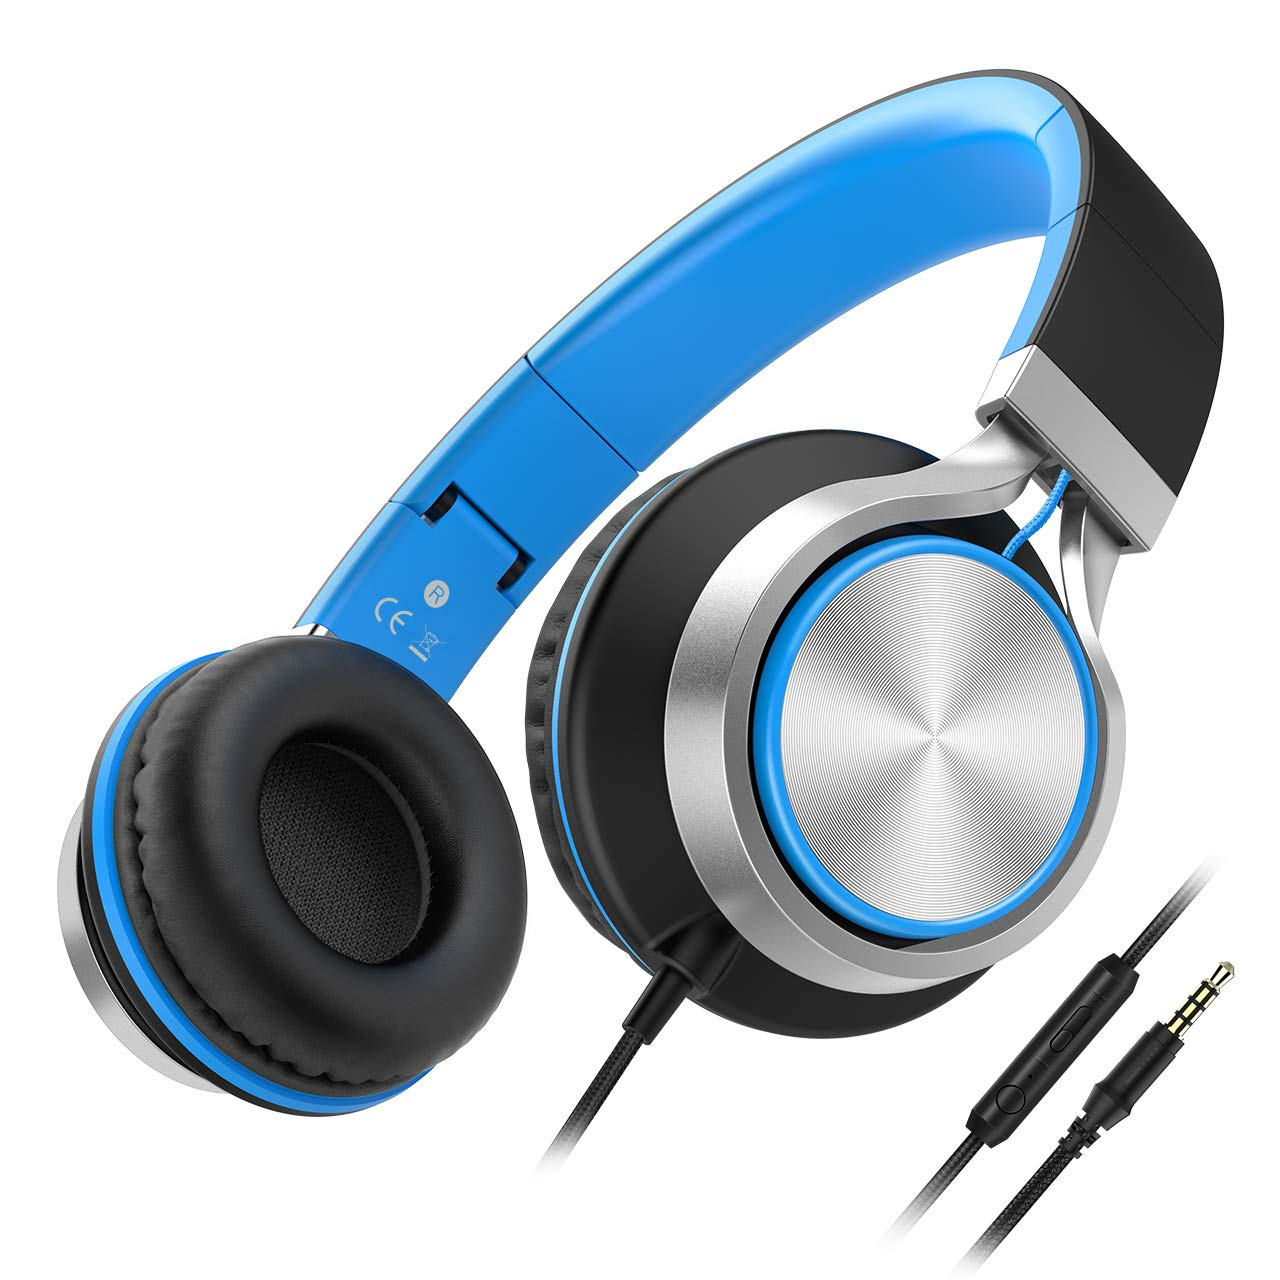 Auriculares Con Cable Besom i77 Best Stereo Plegable Headband Headset con Microfono y Volume Control Over-Ear Earphones